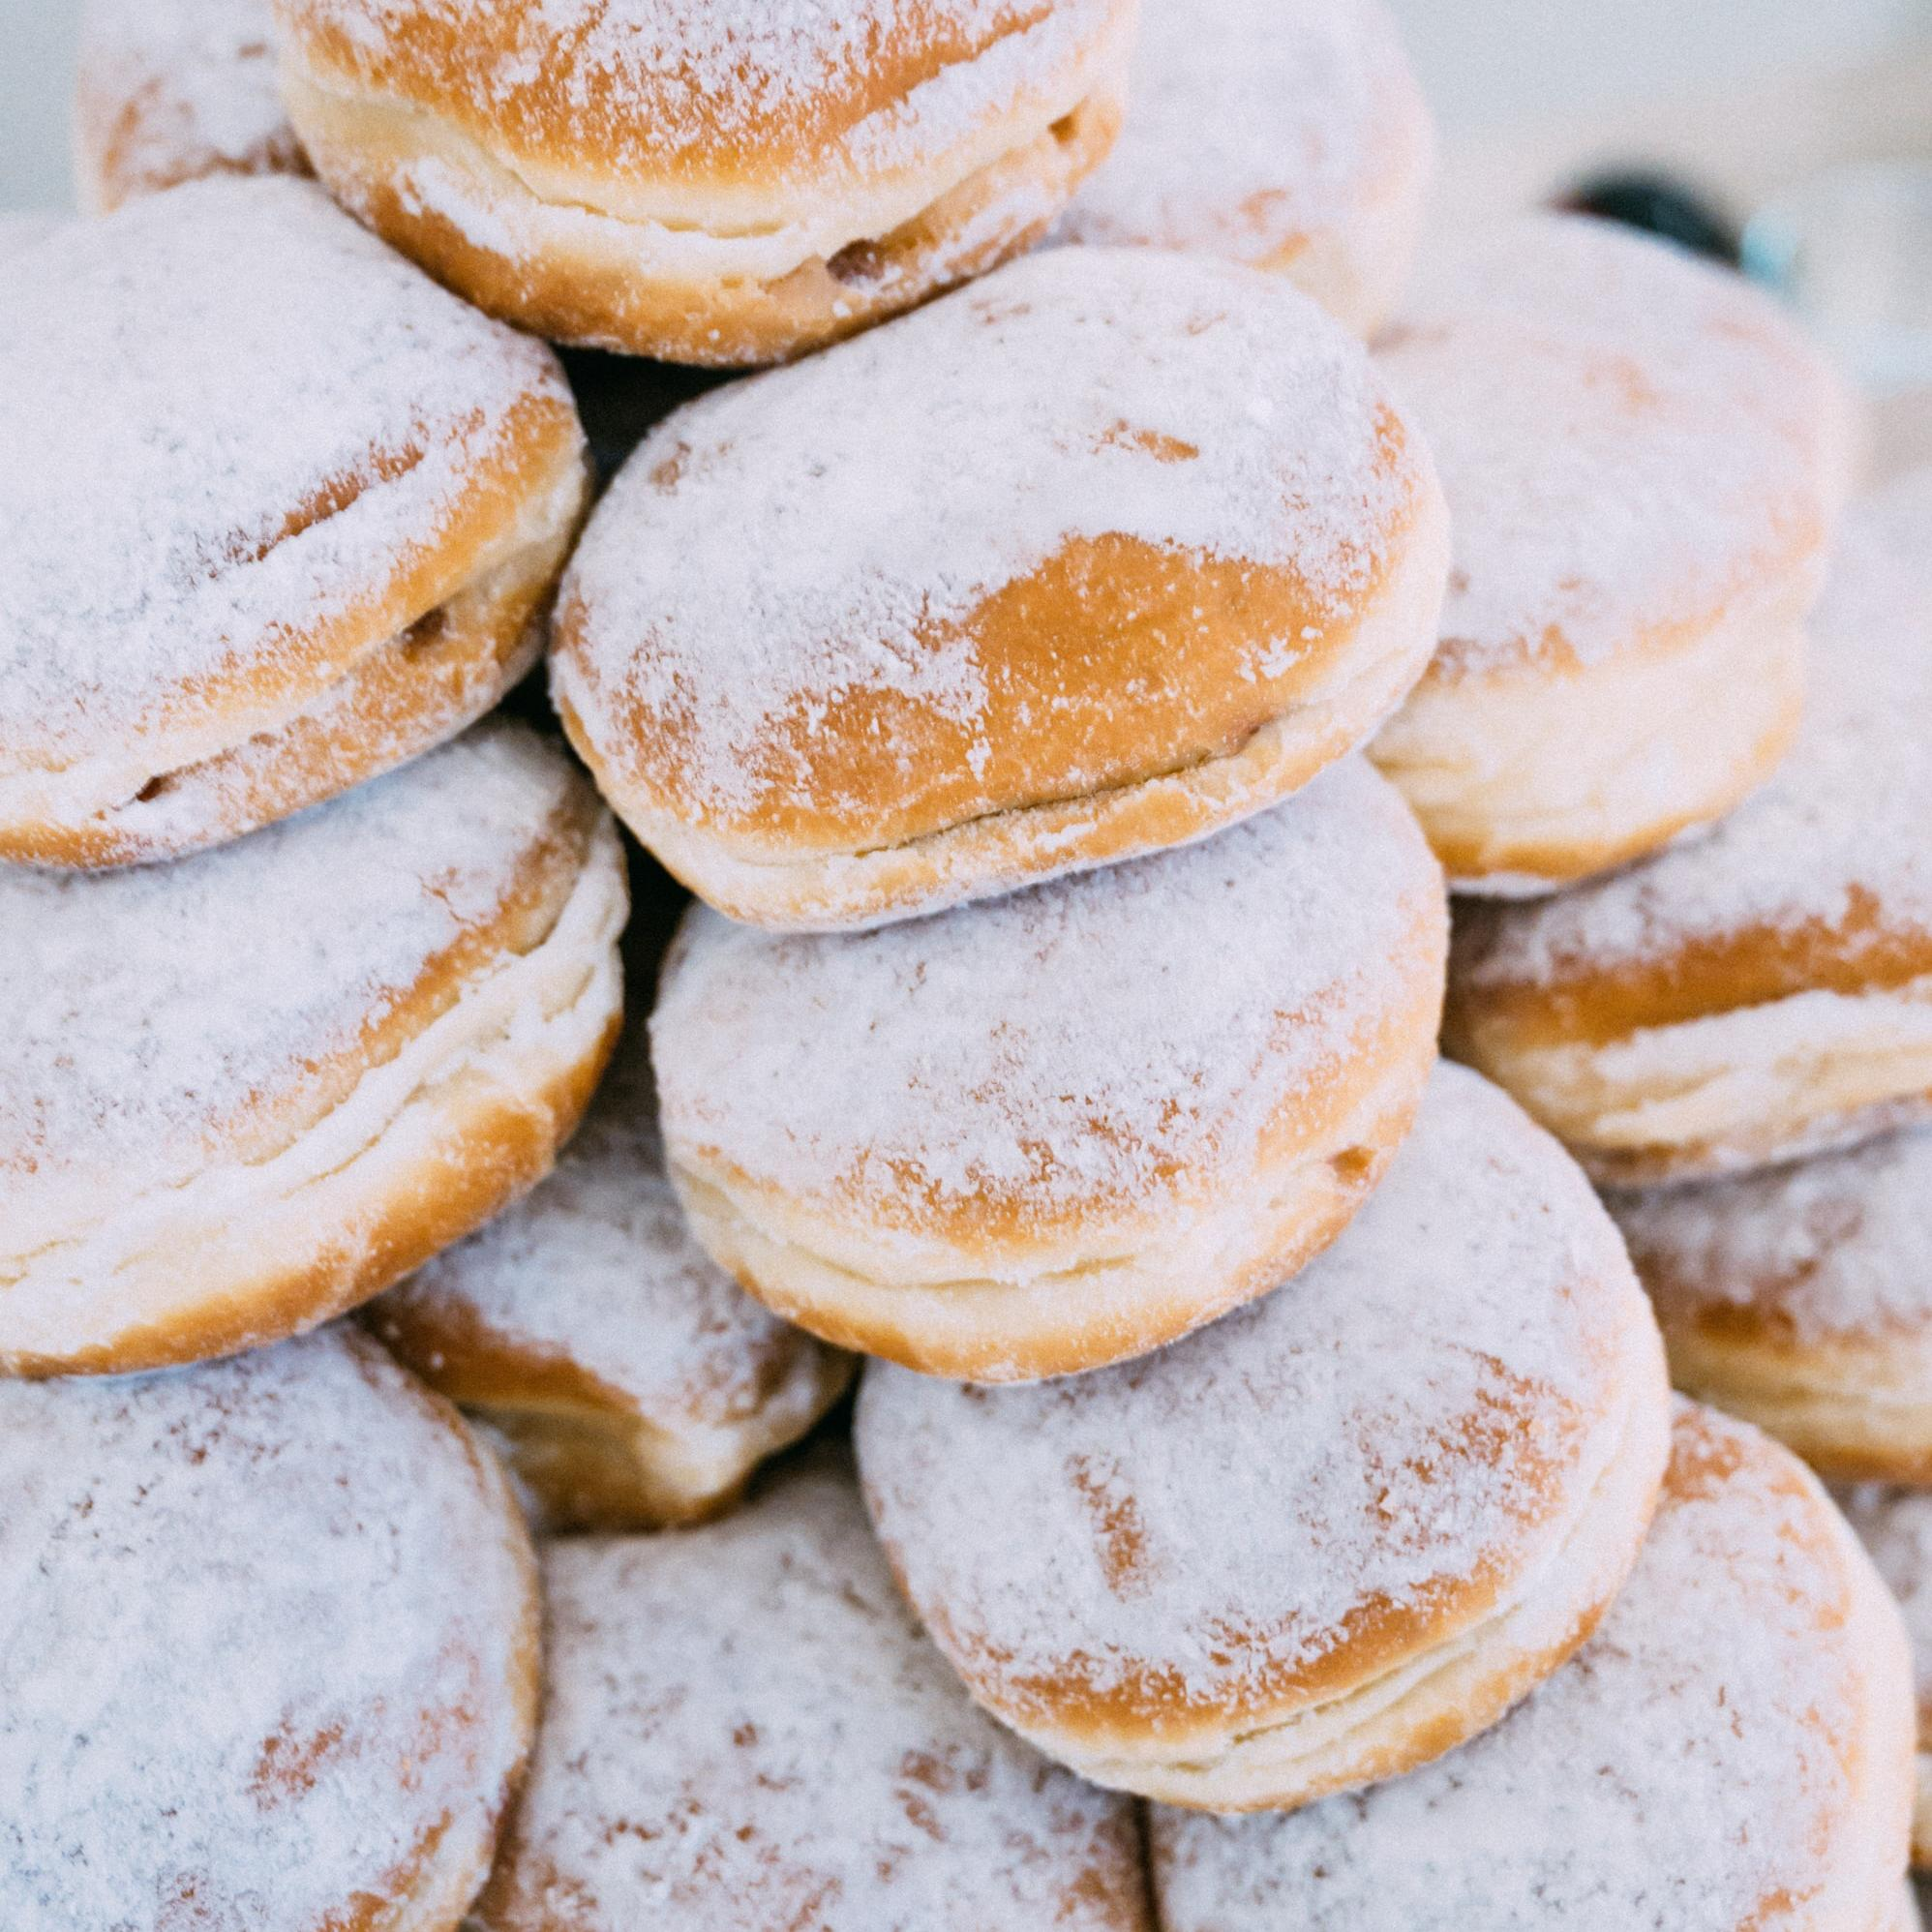 Fastnacht (c) Photo by Gerold Hinzen on Unsplash